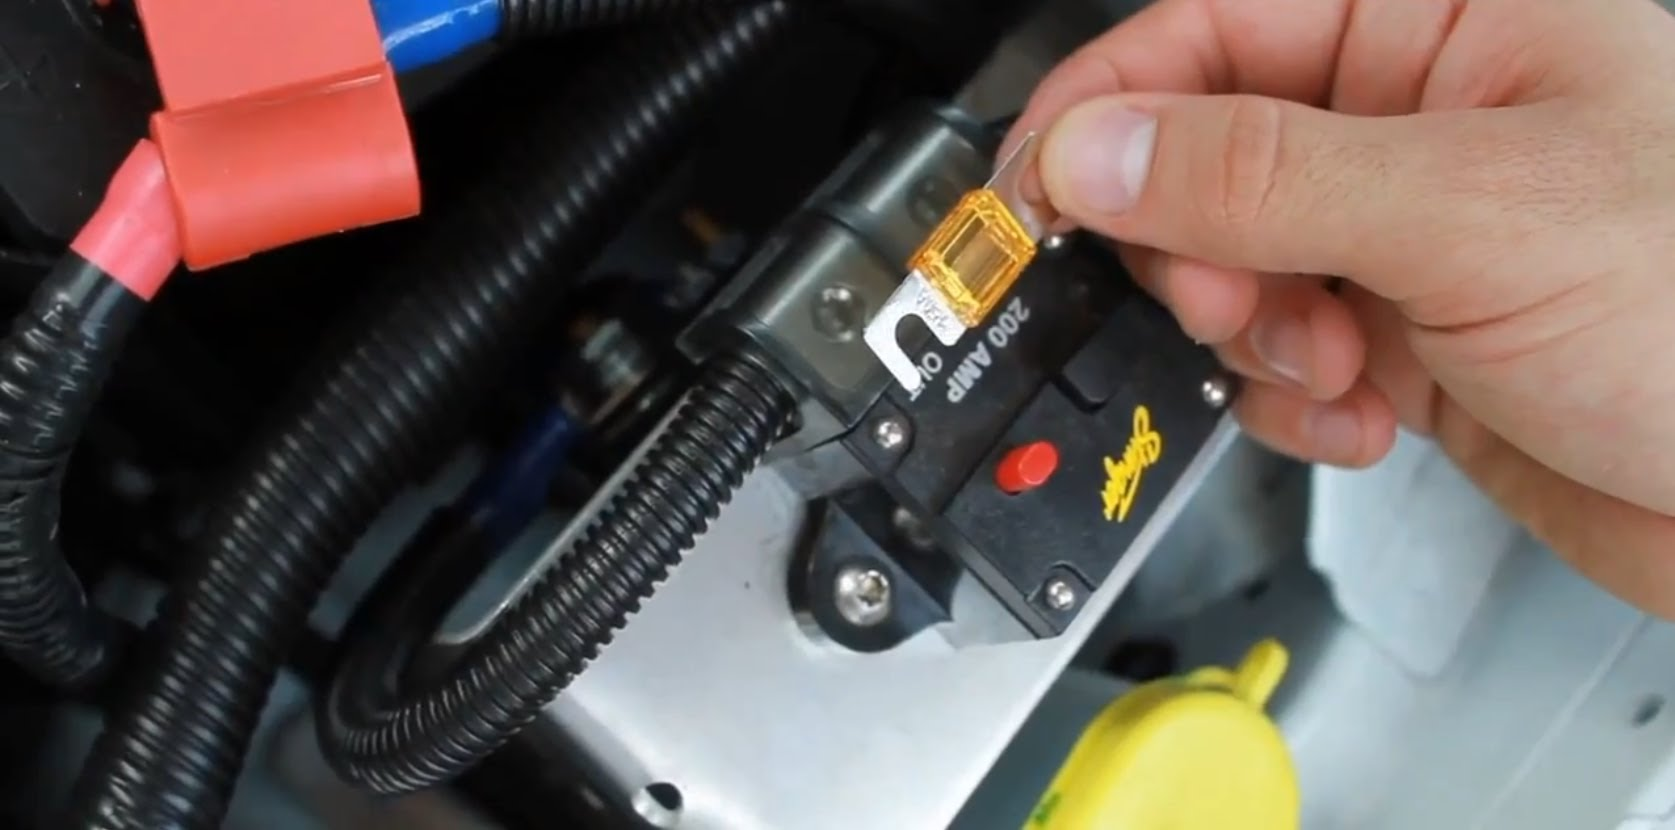 fuse - 6 Car Maintenance Tasks You Can Handle